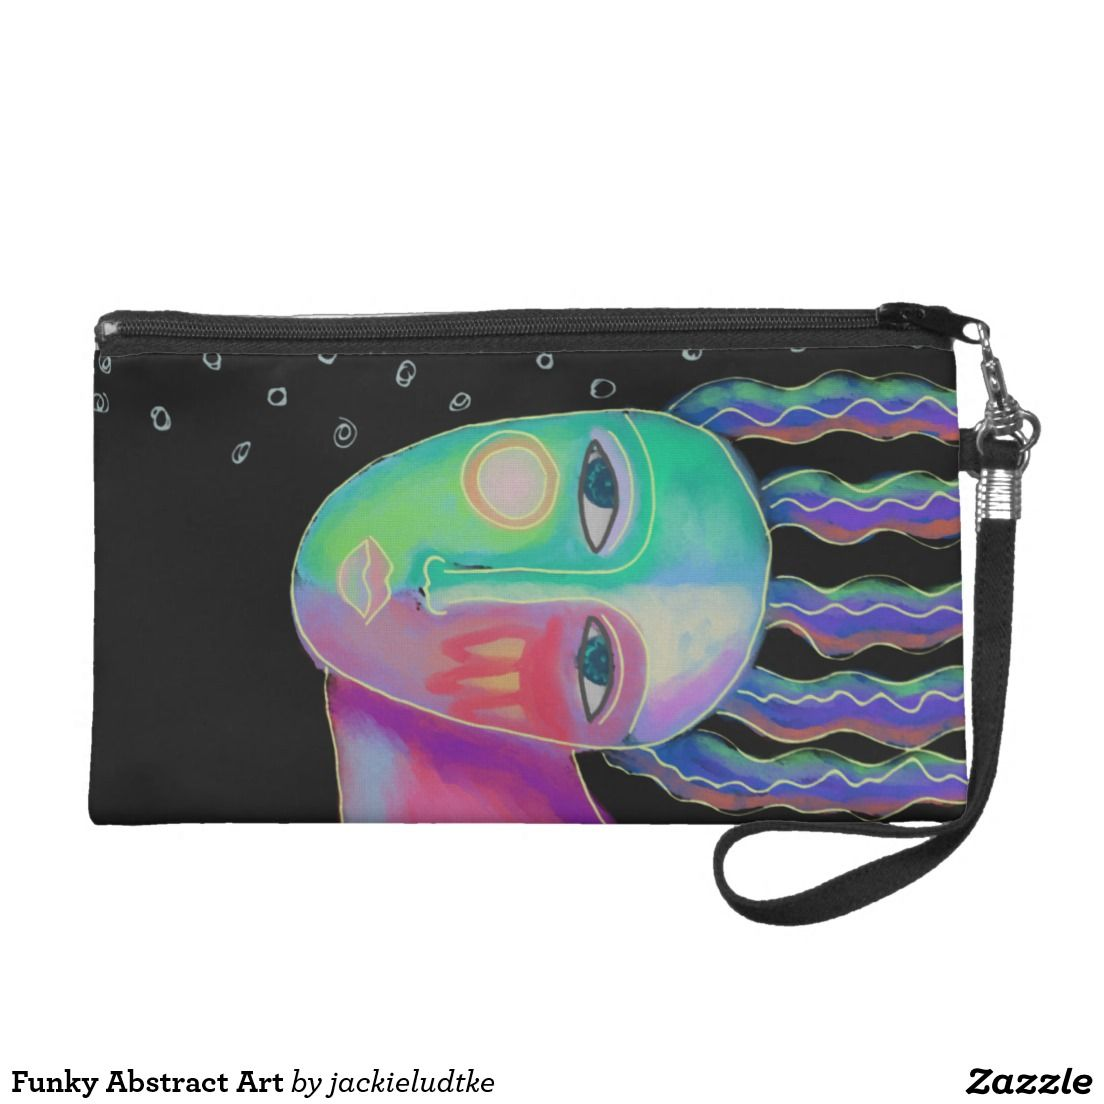 Leather Statement Clutch - Circles Abstract Art by VIDA VIDA Lwkwqs7h